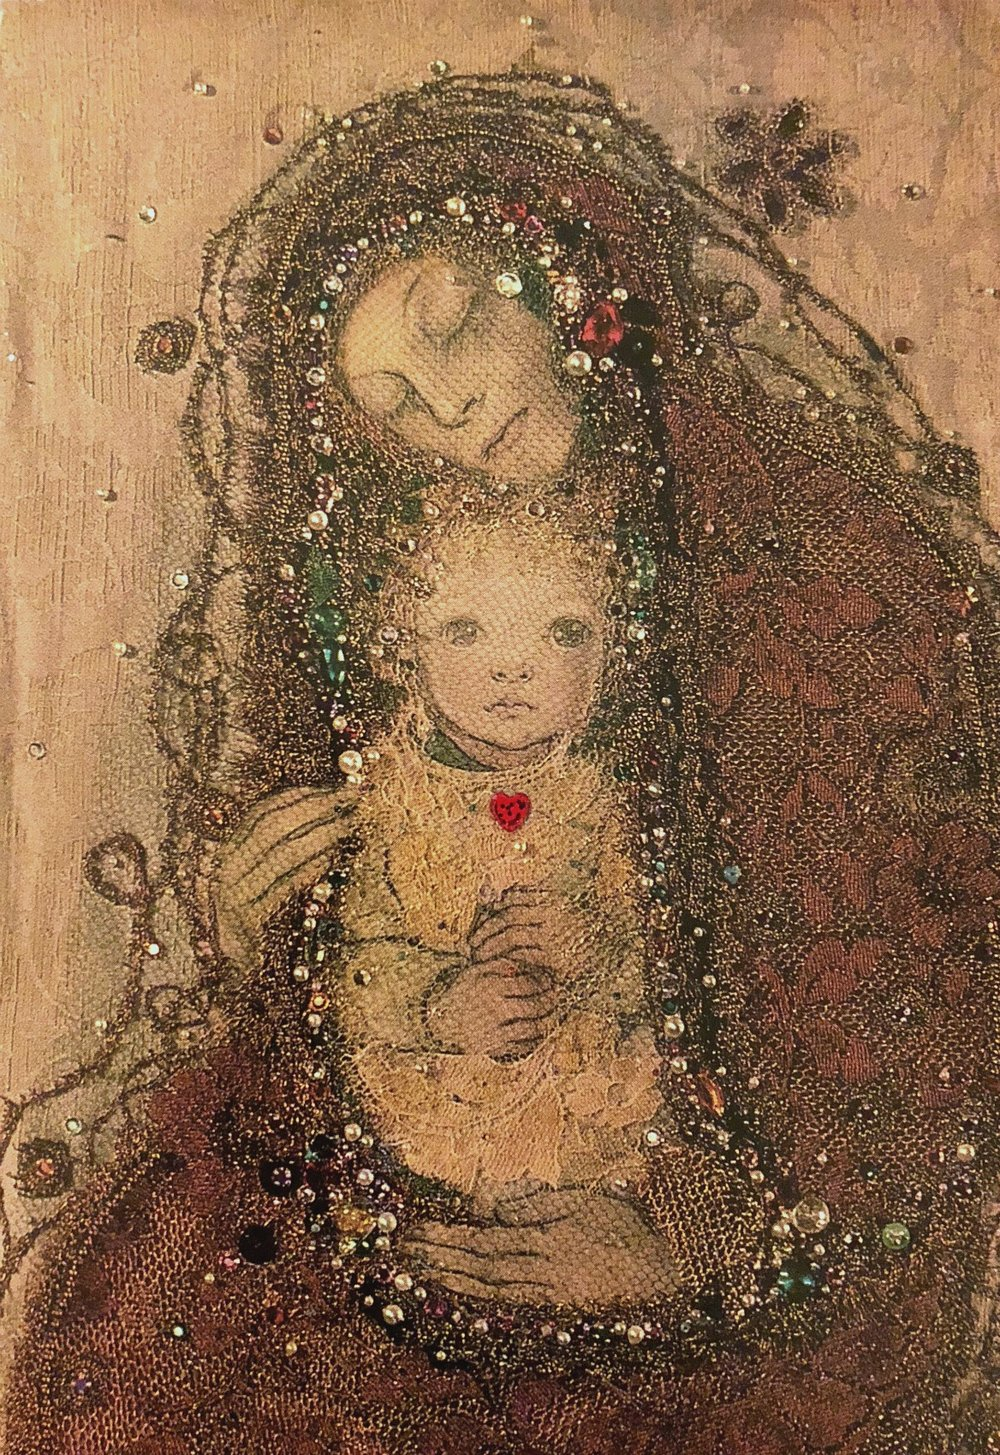 Frohe Weihnachten by Sulamith Wülfing. The Madonna and Child.